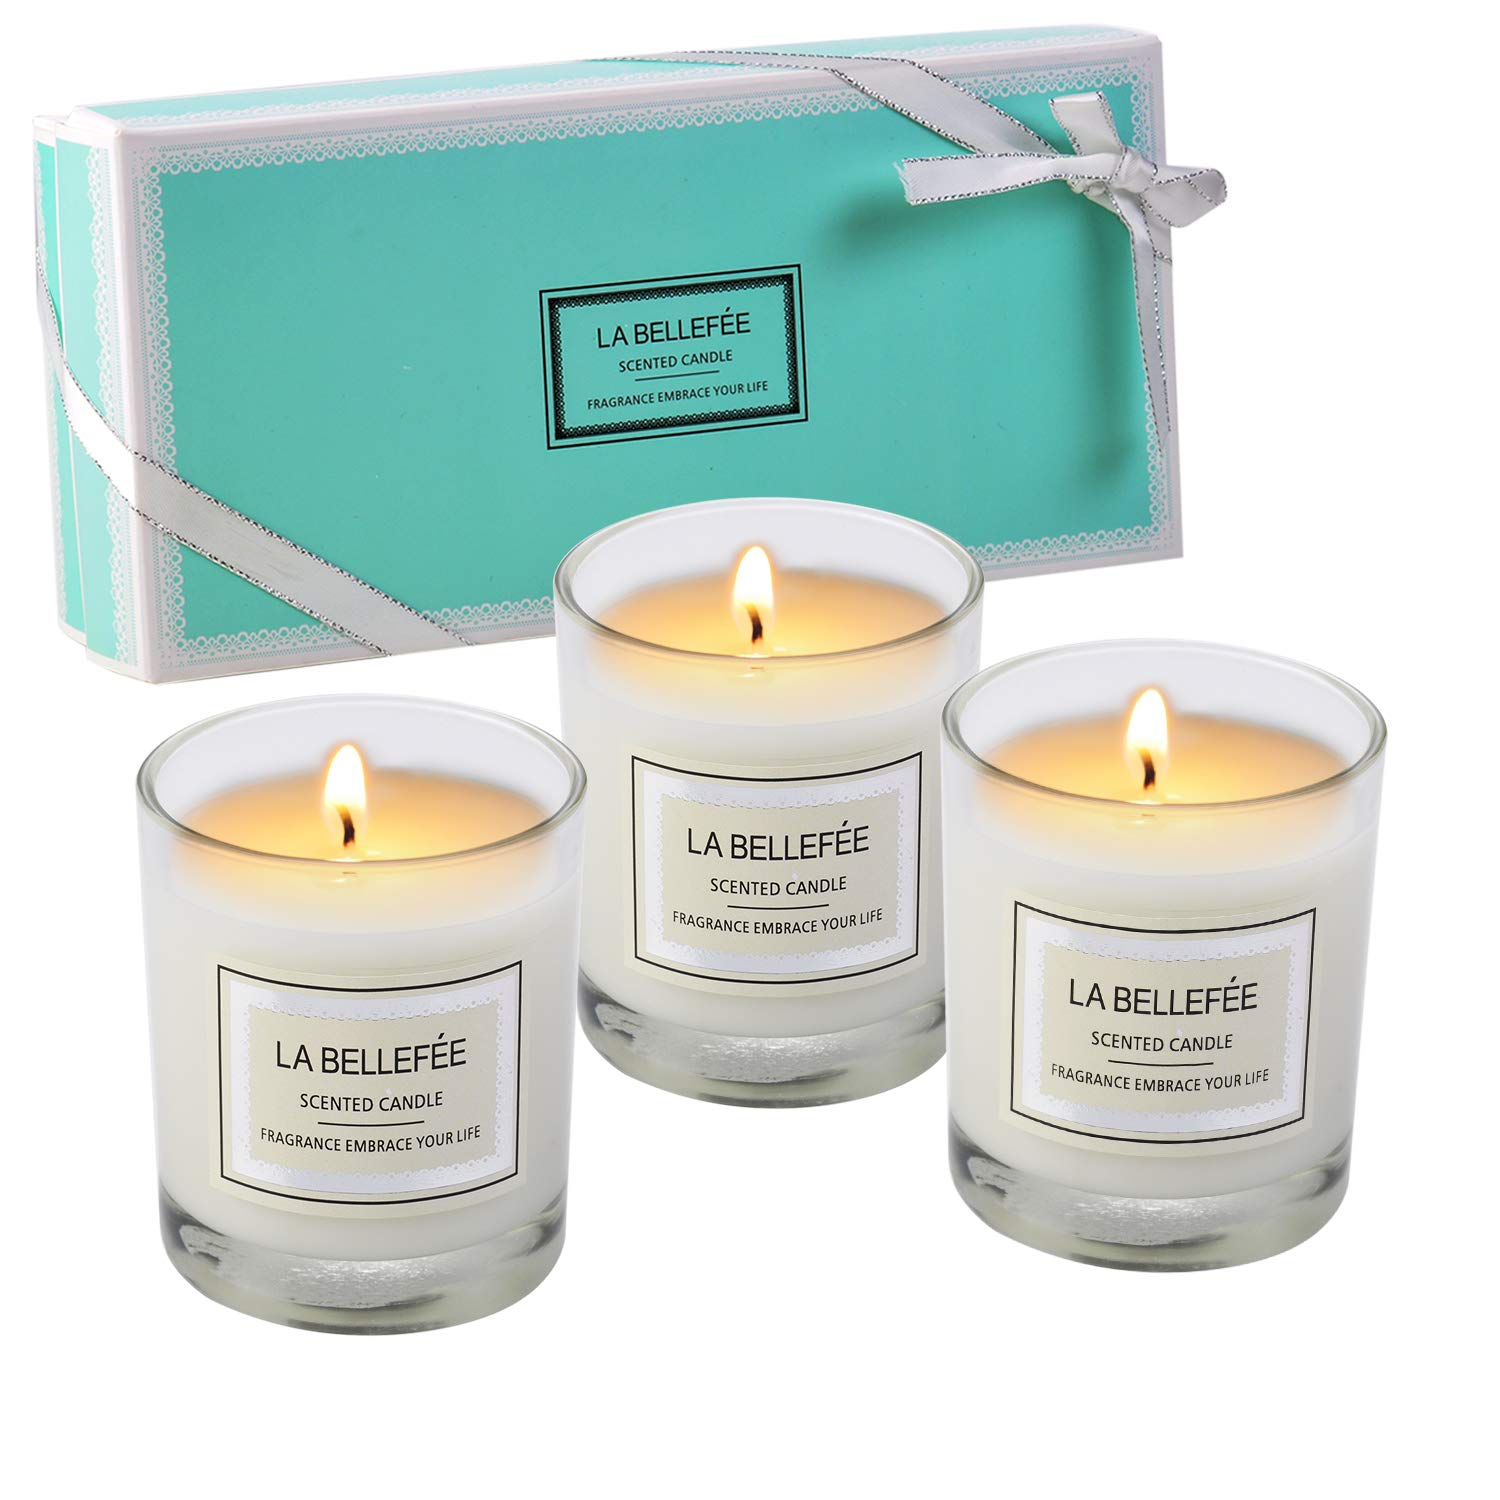 LA BELLEFÉE Scented Candles gift package Votive Candle Soy Wax Jar Candle